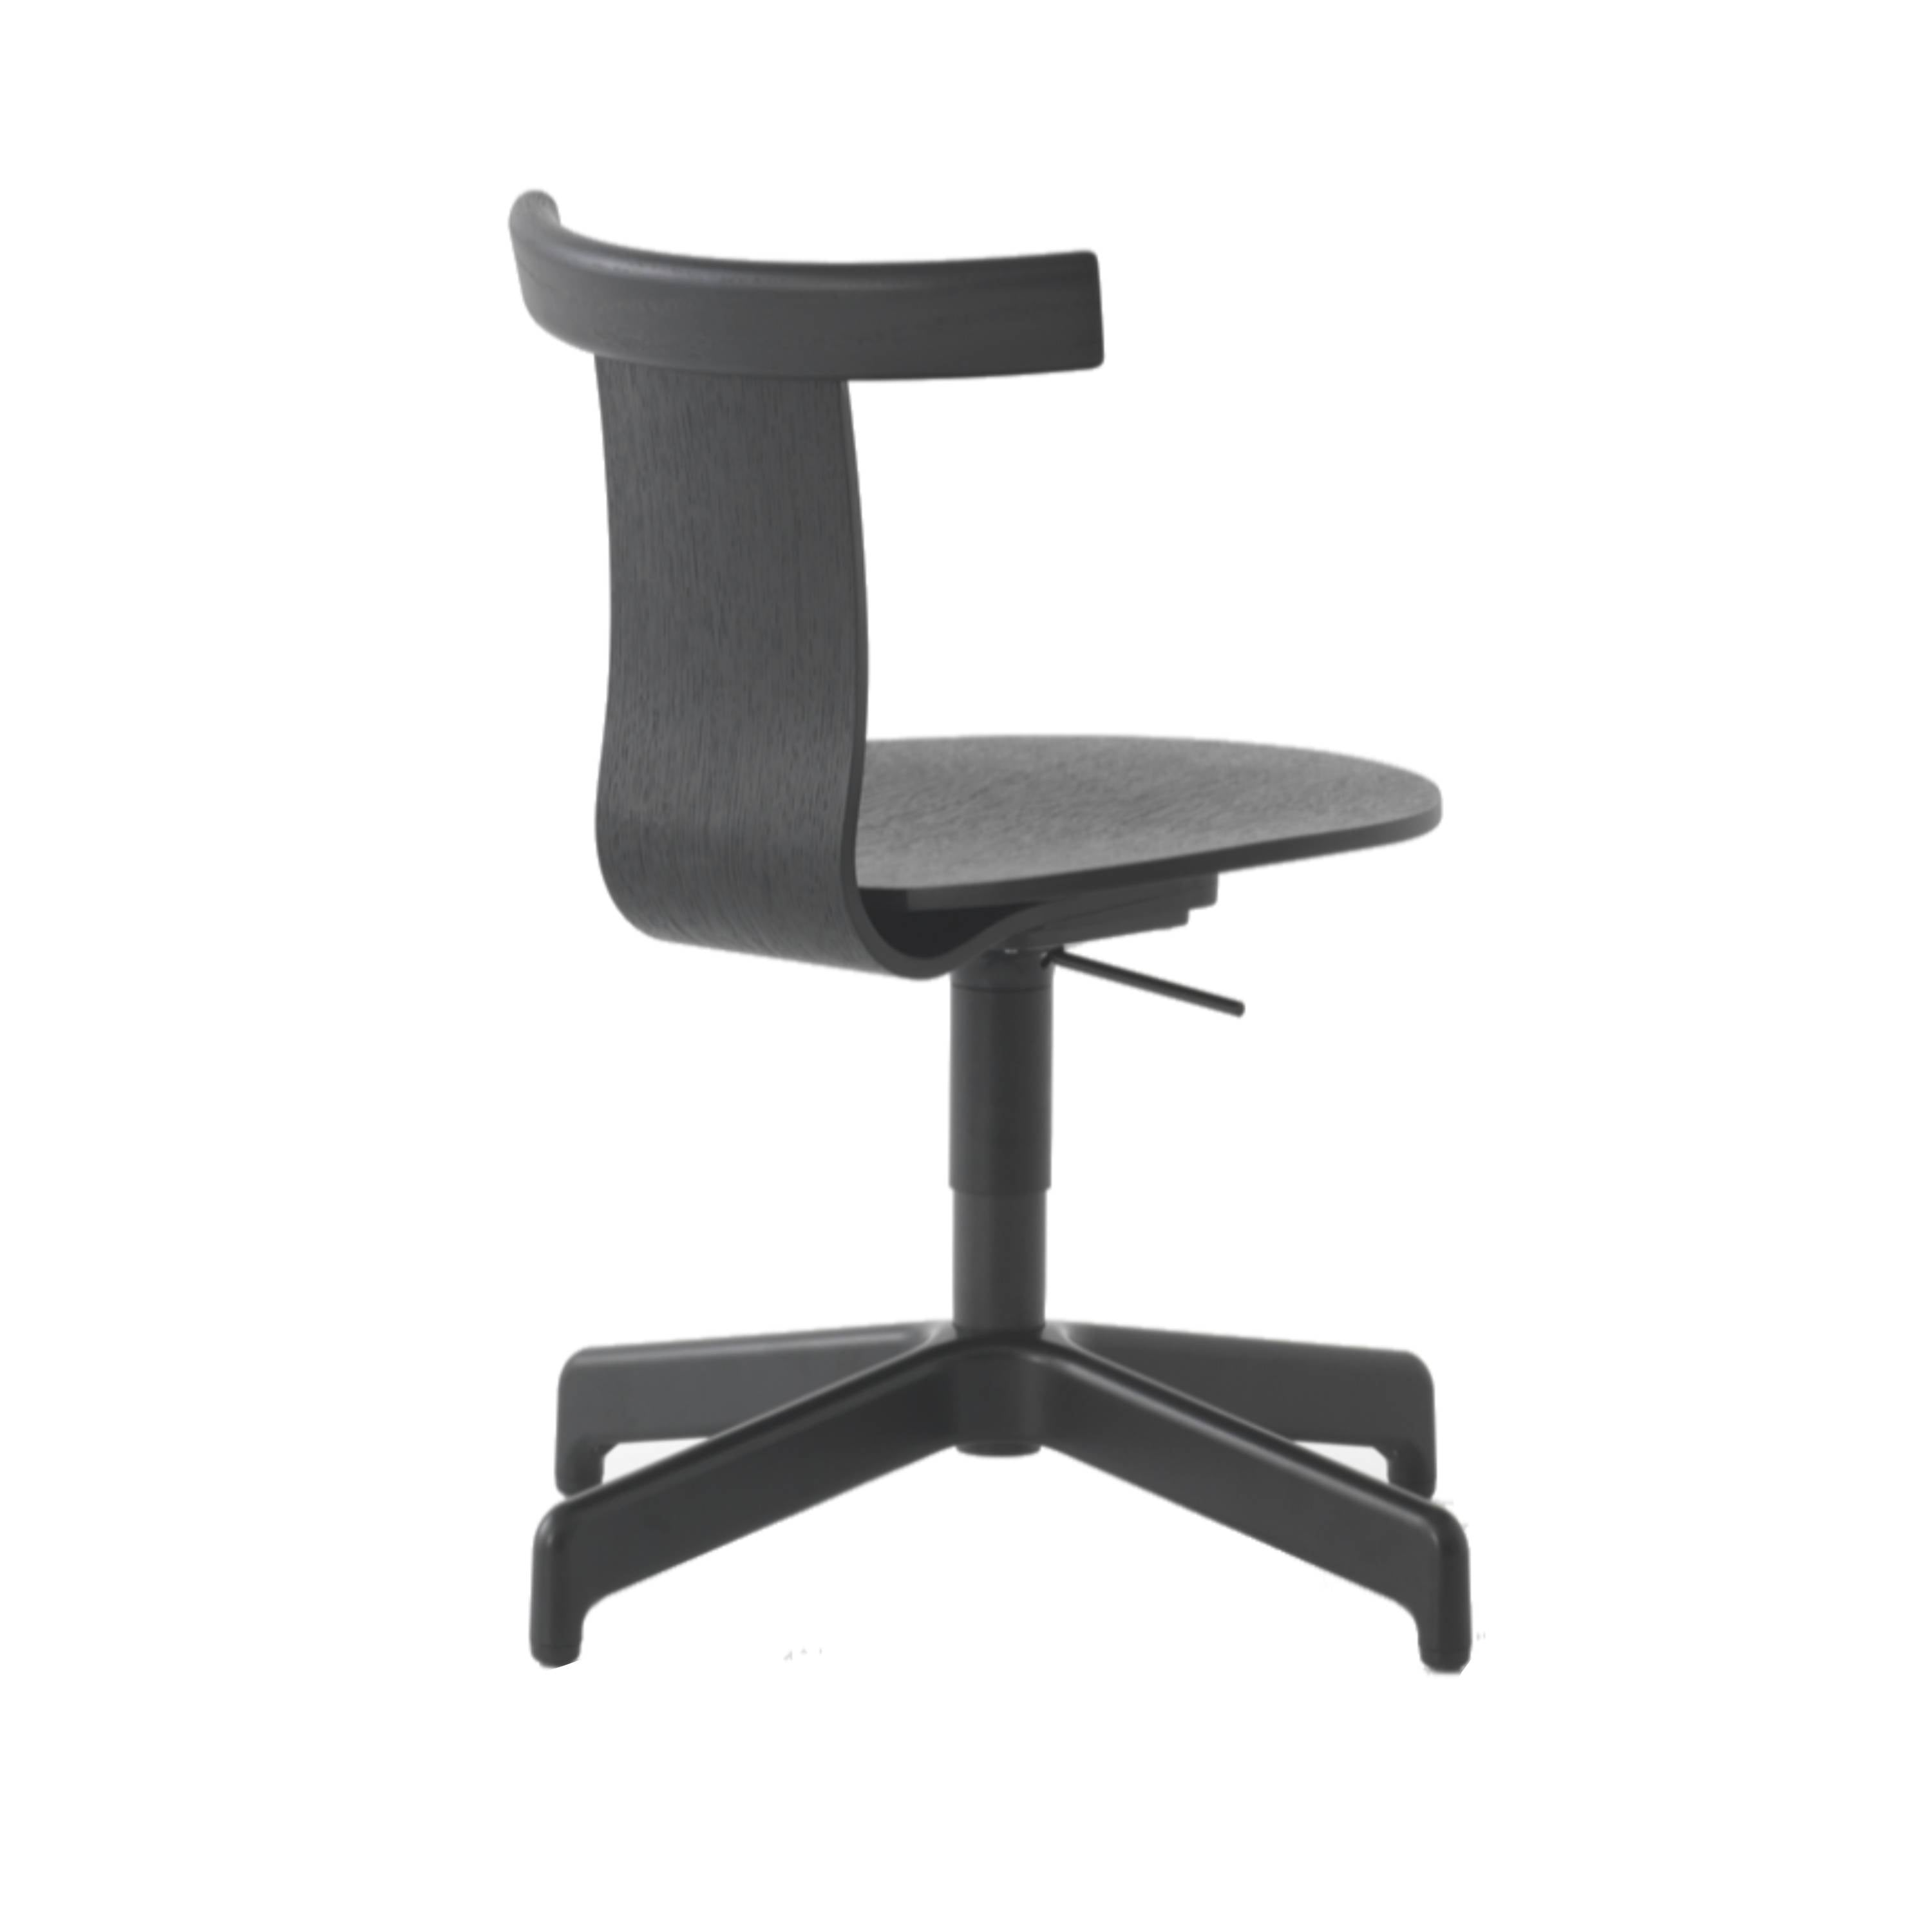 Jiro Swivel Chair: Black Shell + Black Base + Without Castors